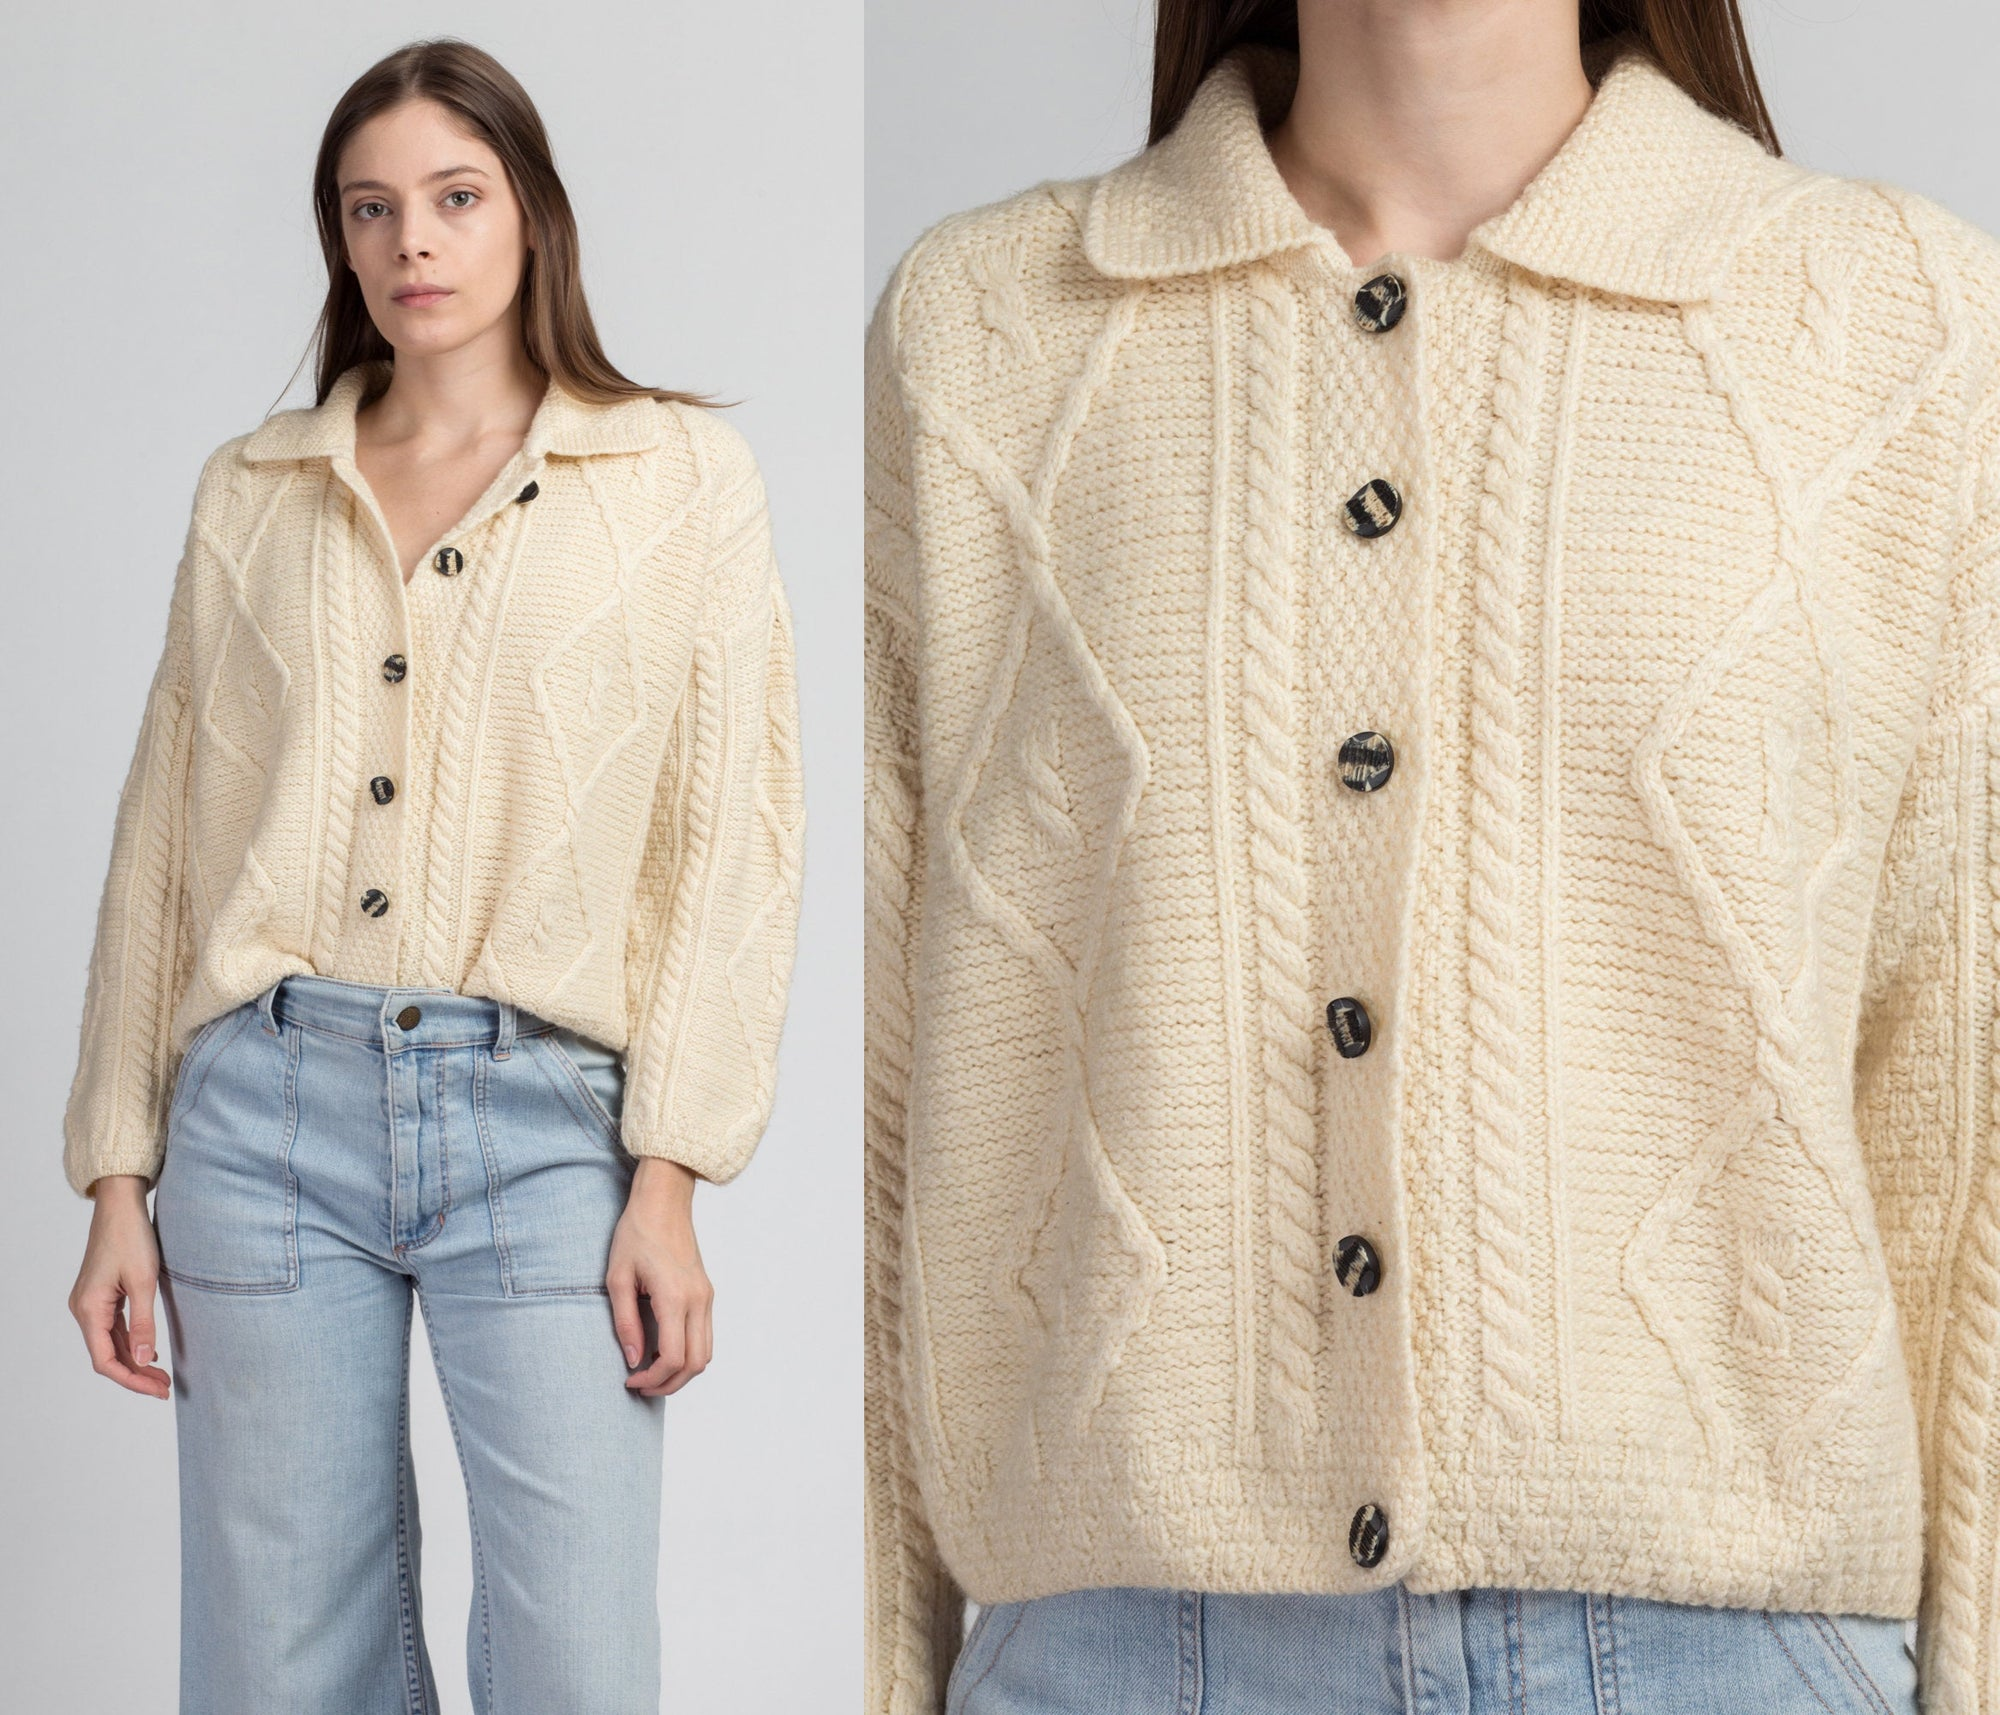 70s Irish Merino Wool Cable Knit Cardigan - Medium